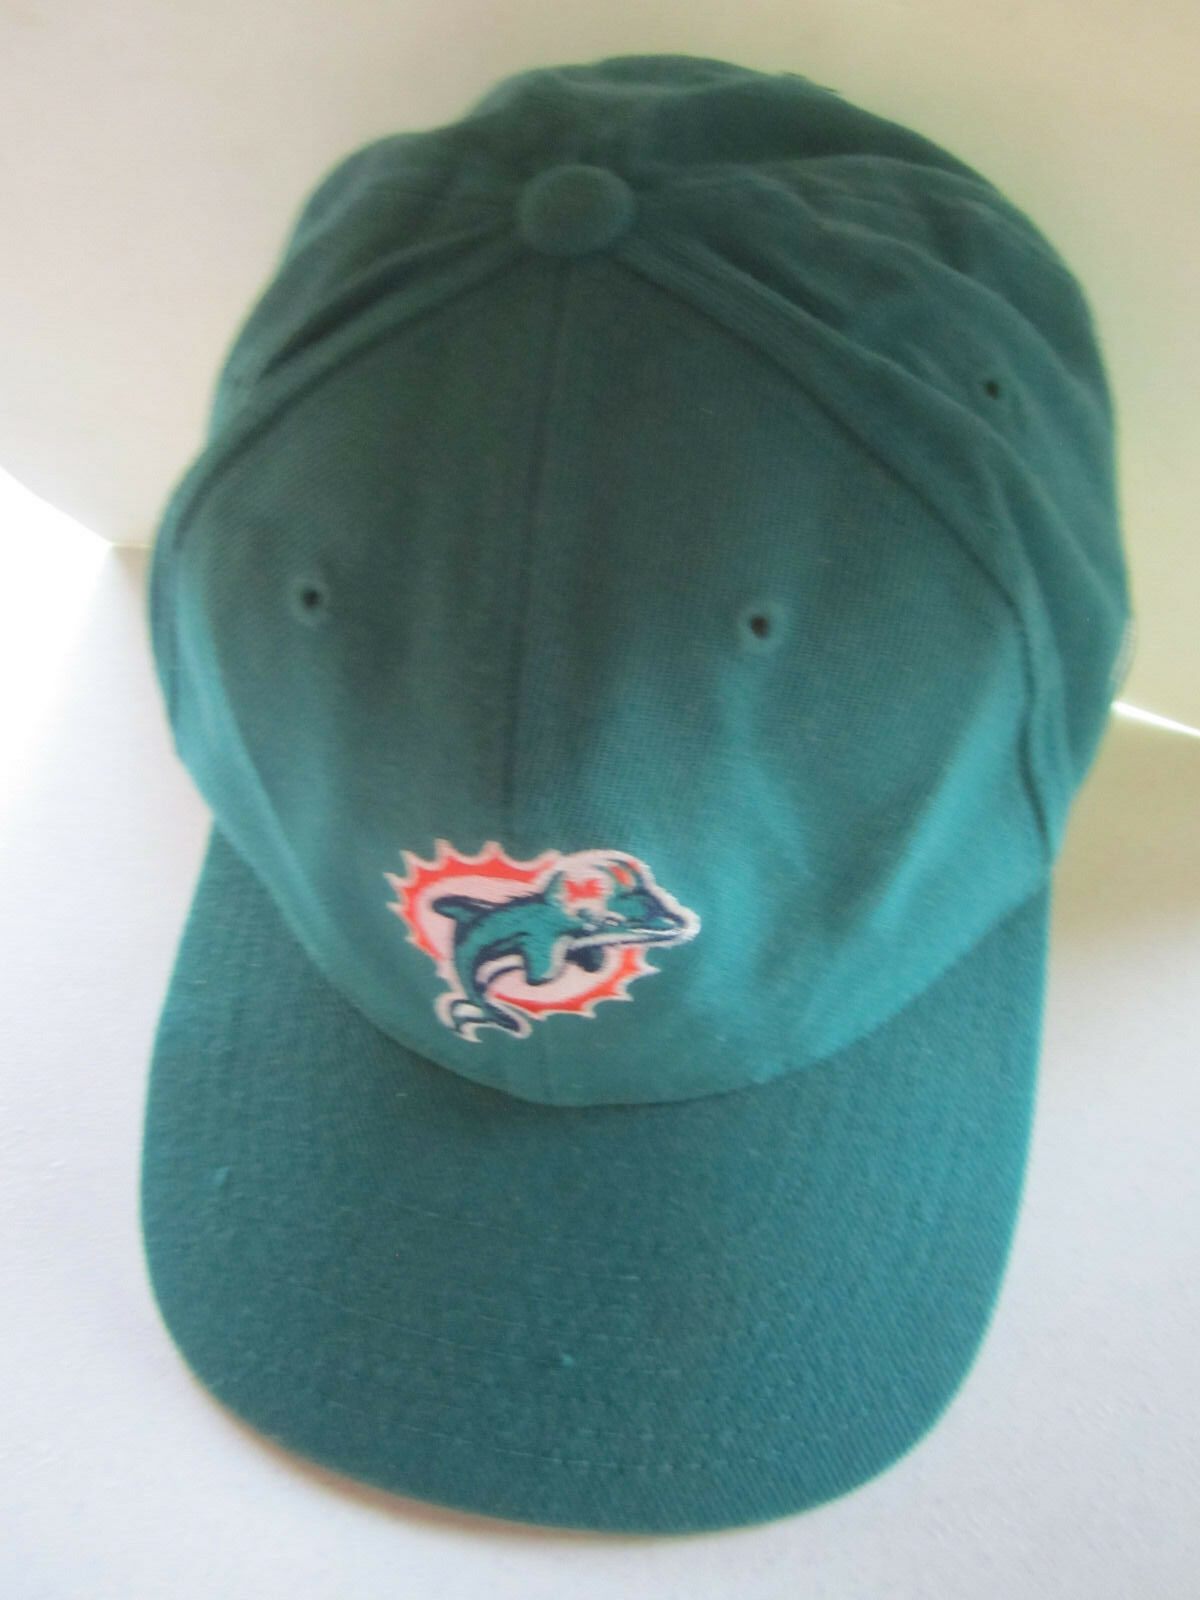 new style 0e043 3f056 ... czech vintage 90s 7 miami dolphins logo athletic fitted cap 7 90s 3 8  dan marino